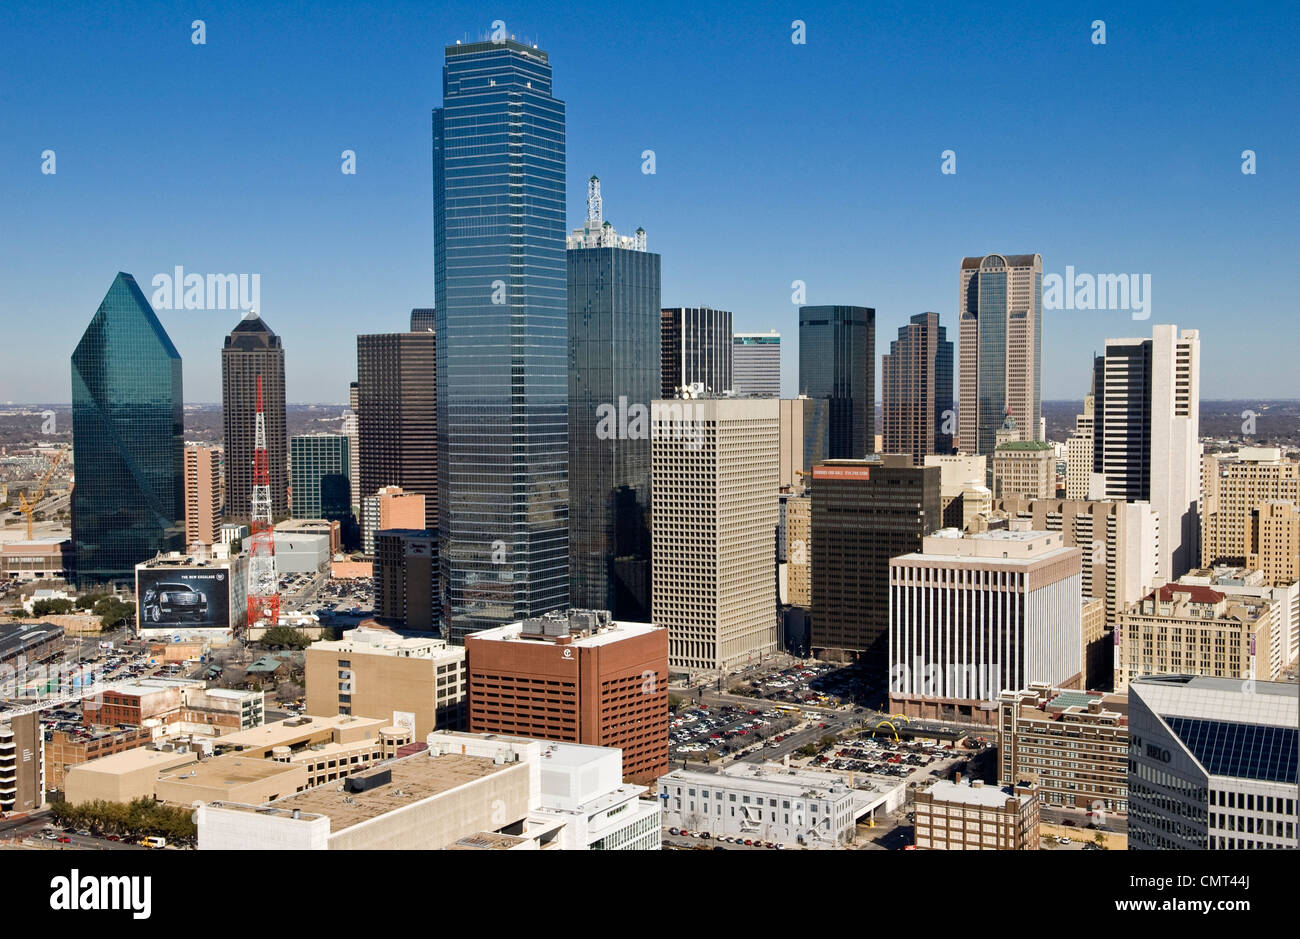 Dallas, Texas - skyline - Stock Image